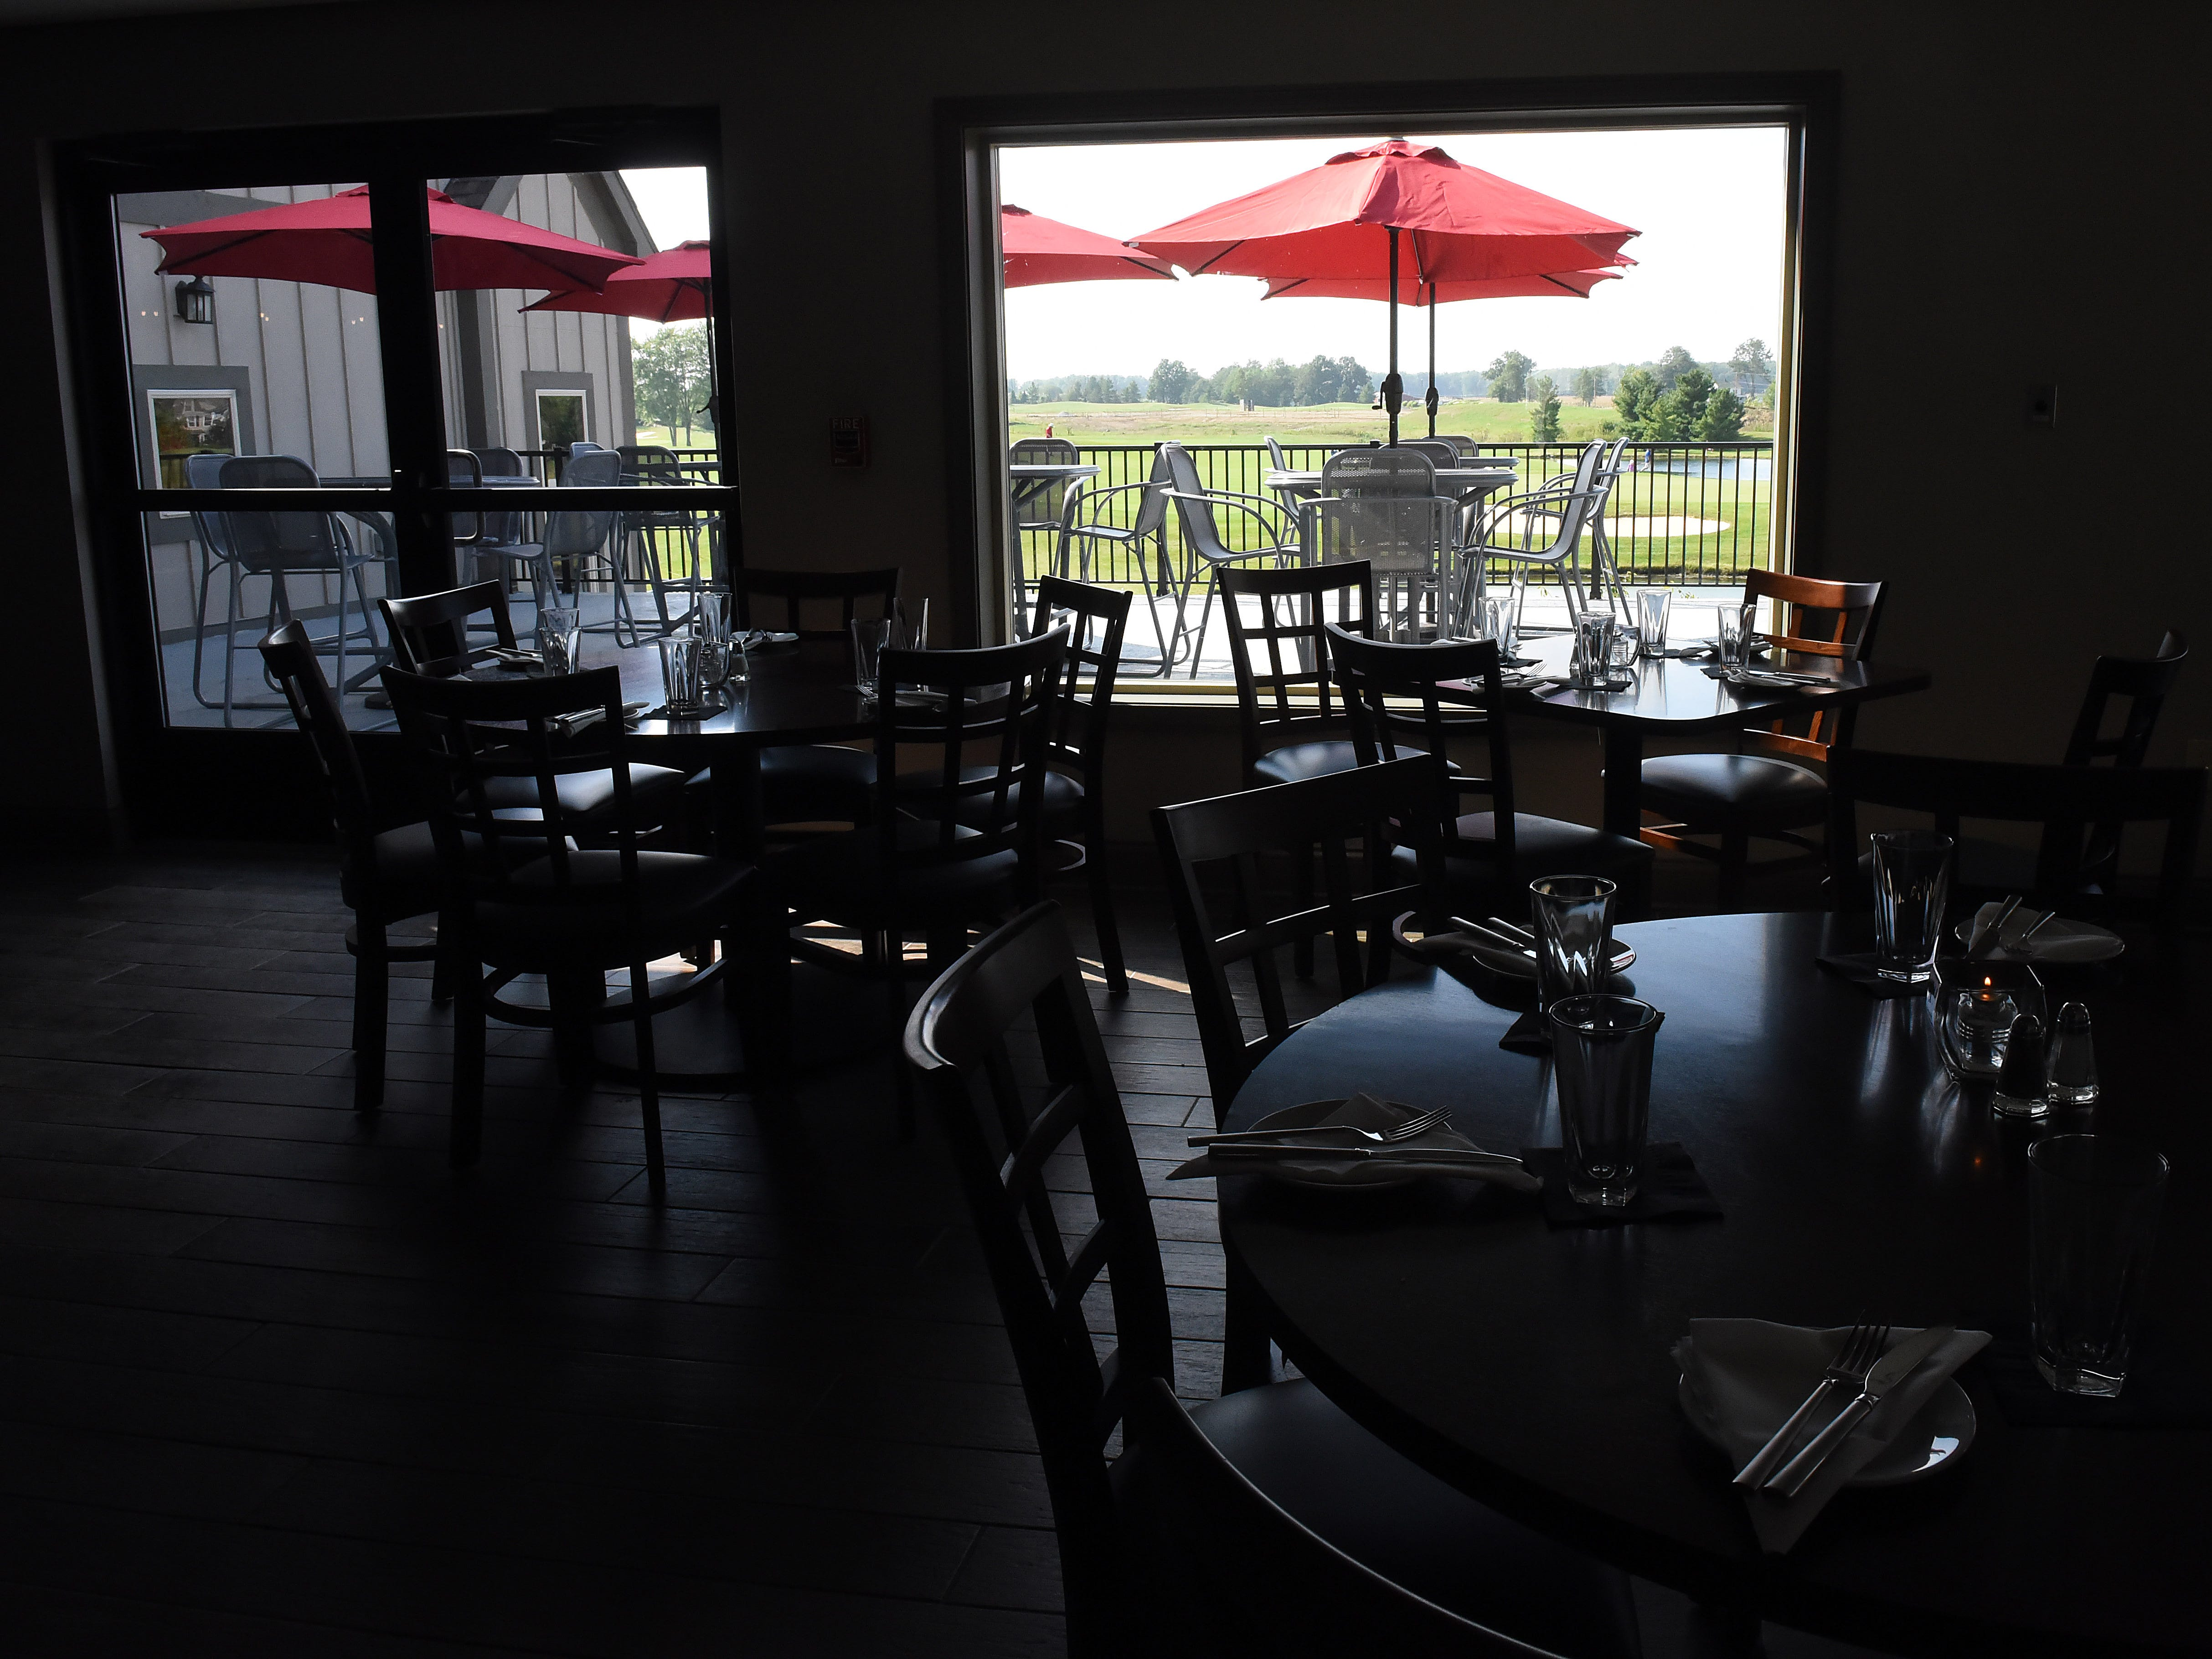 Dinning room of The Loft at Cumberland. The Pataskala restaurant is part of Cumberland Trail Golf Club.